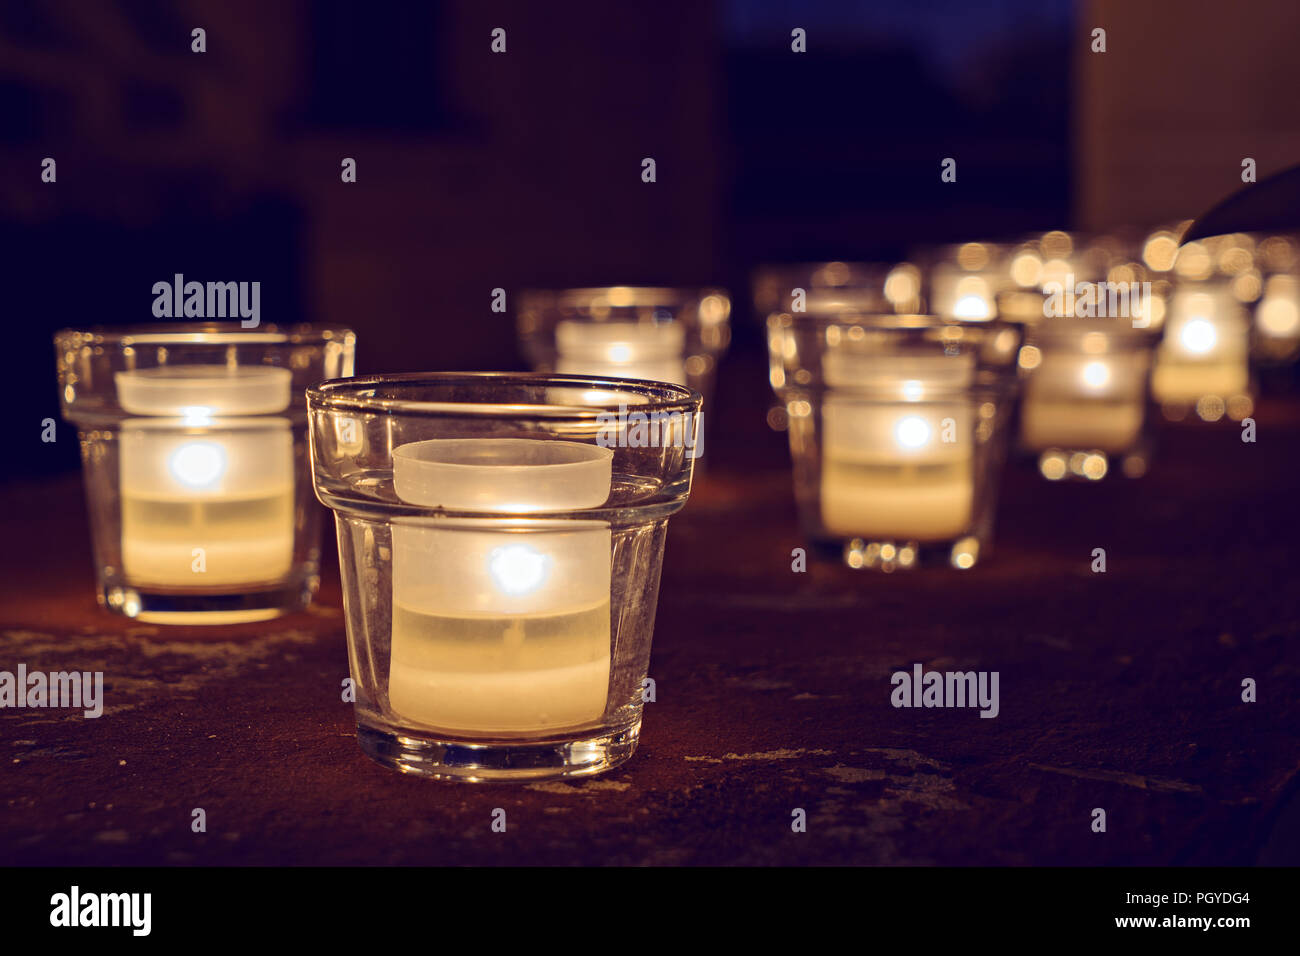 Large group of glass jars with burning candles on the dark background, selective focus. Hygge concept - Stock Image